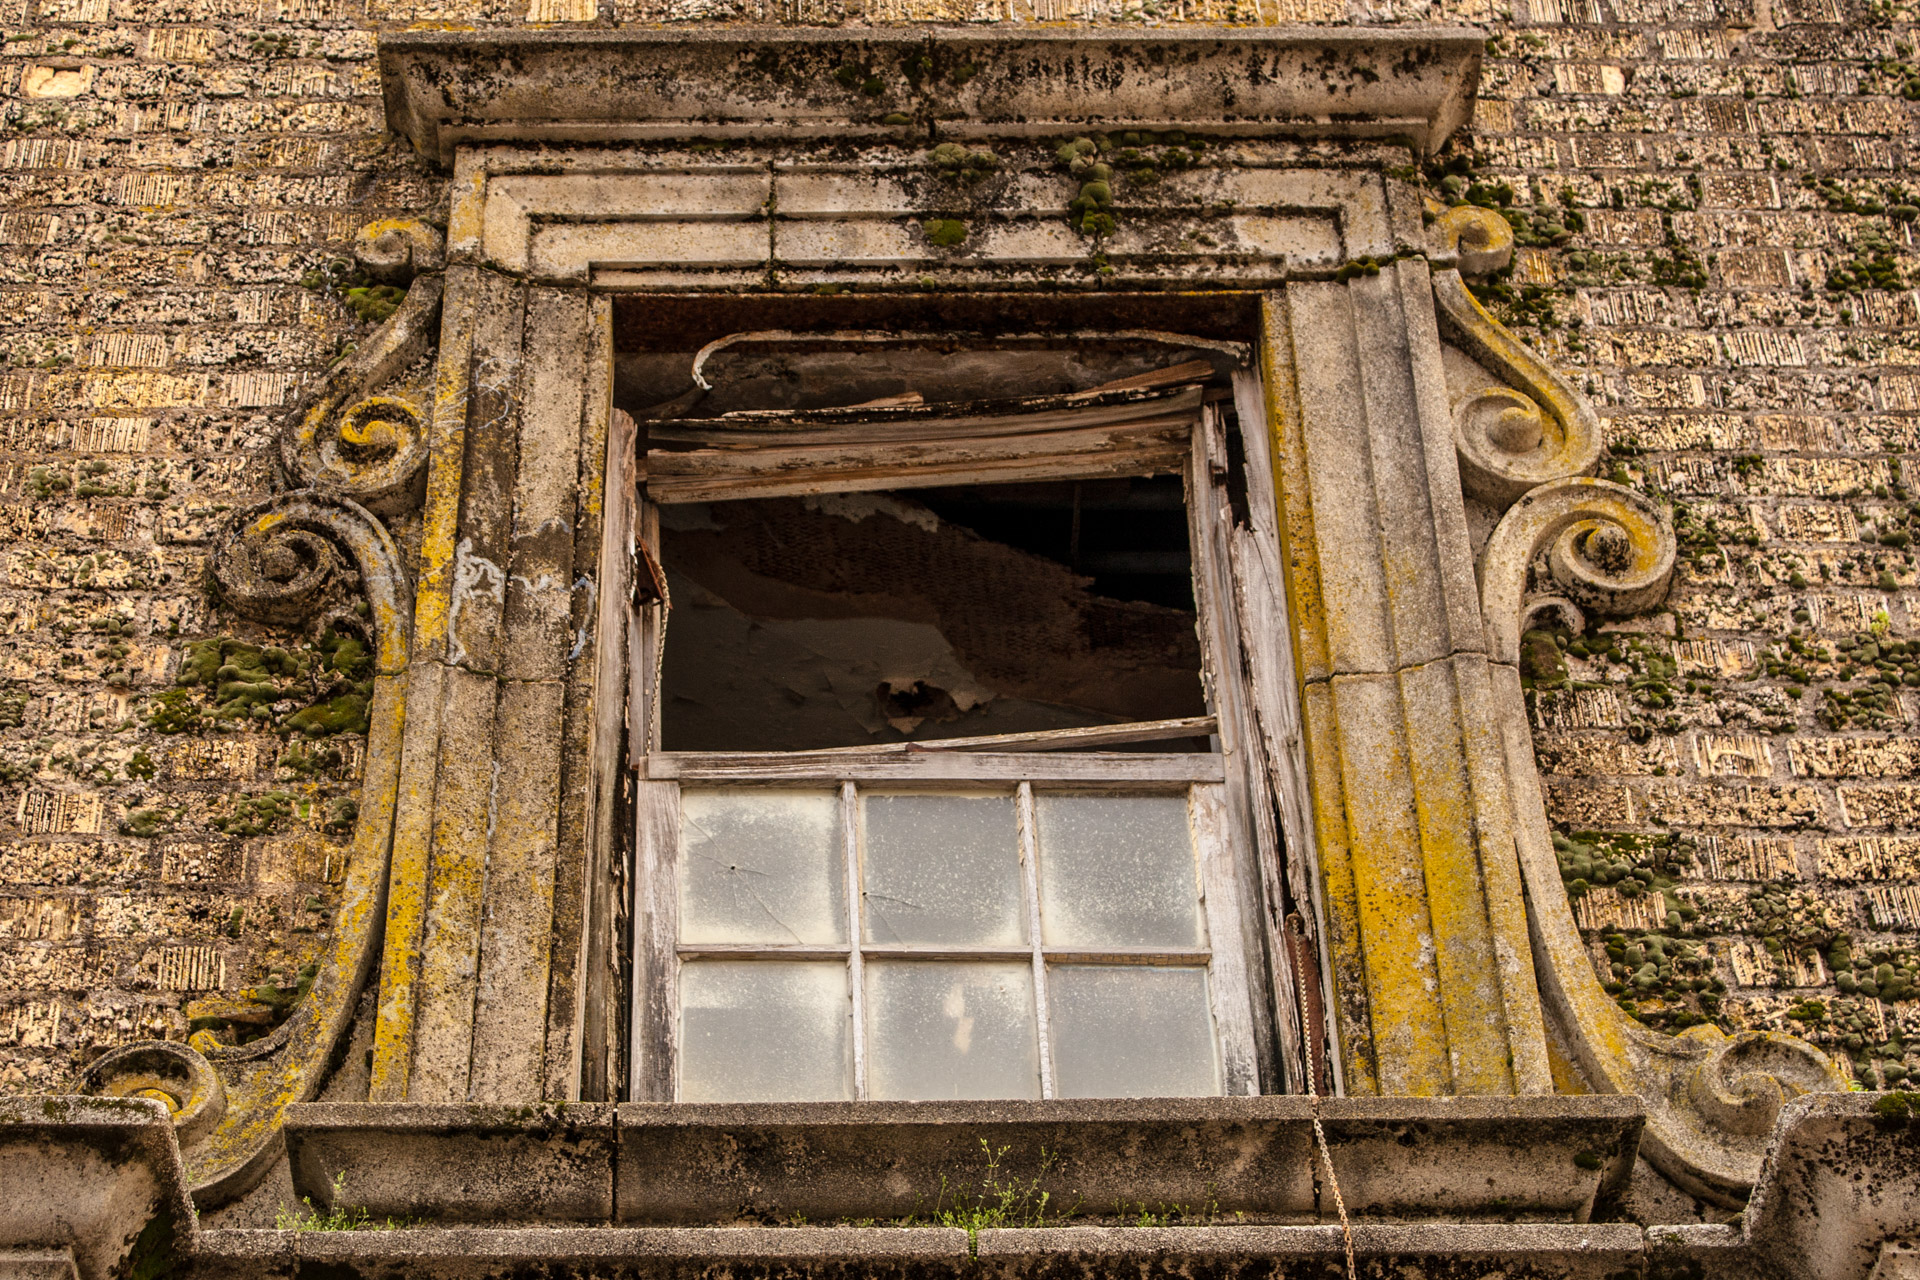 The Baker Hotel Part 3 (upper window)